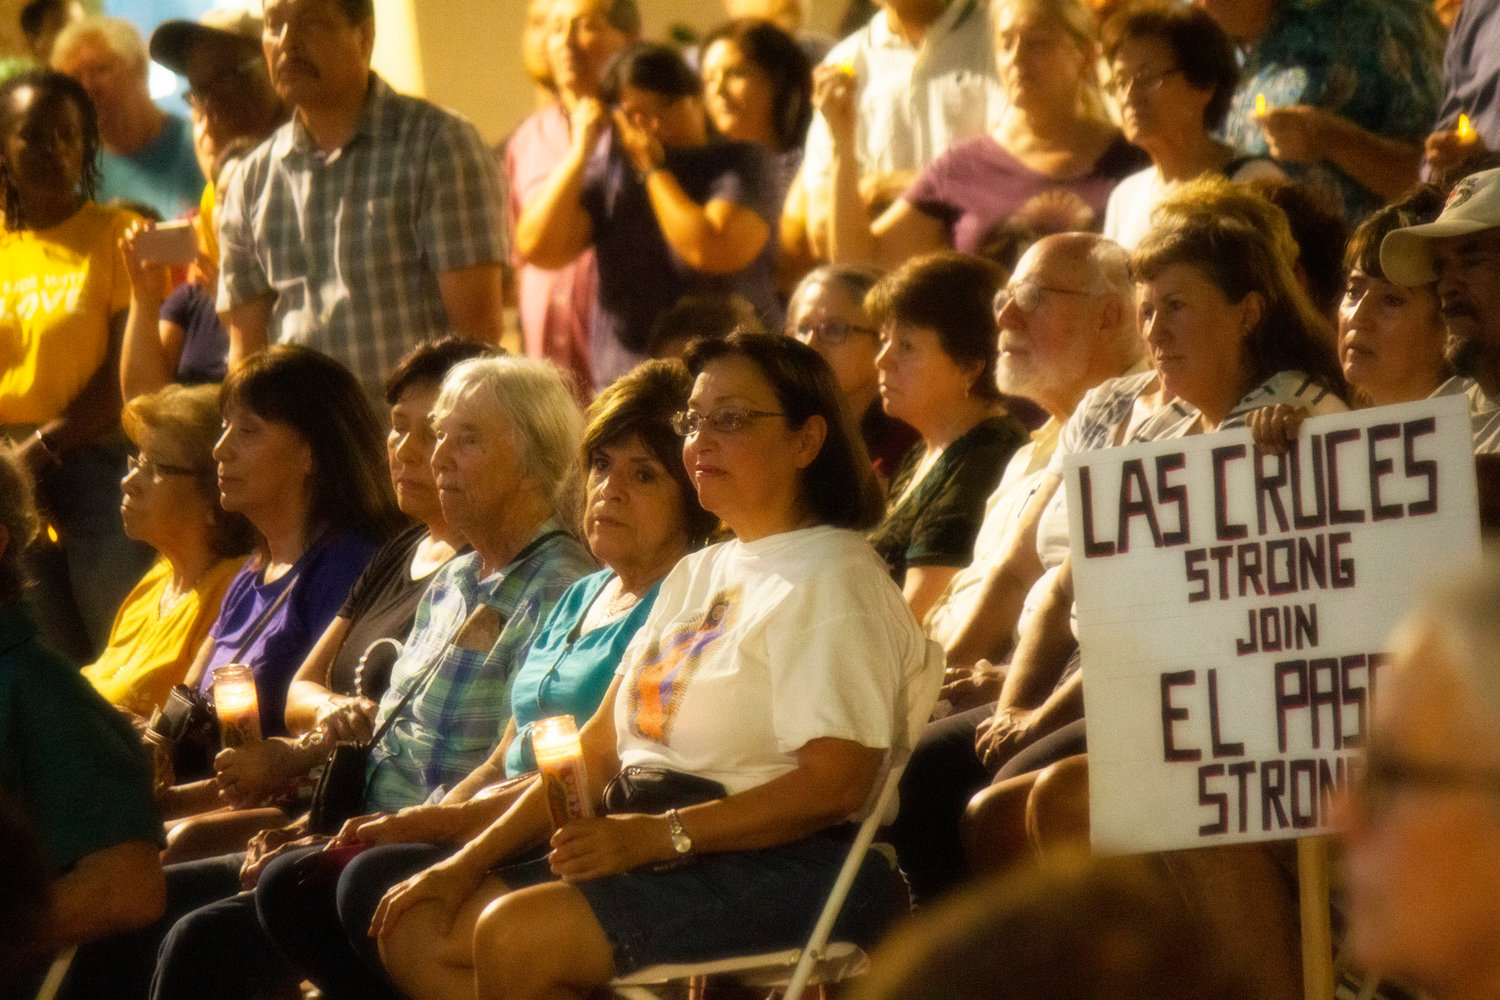 Residents of Dona Ana county came together Monday night on the Plaza de Las Cruces to join in solidarity with the City of El Paso after an act of terrorism Saturday morning at a Walmart in El Paso that has left 22 victims confirmed dead.